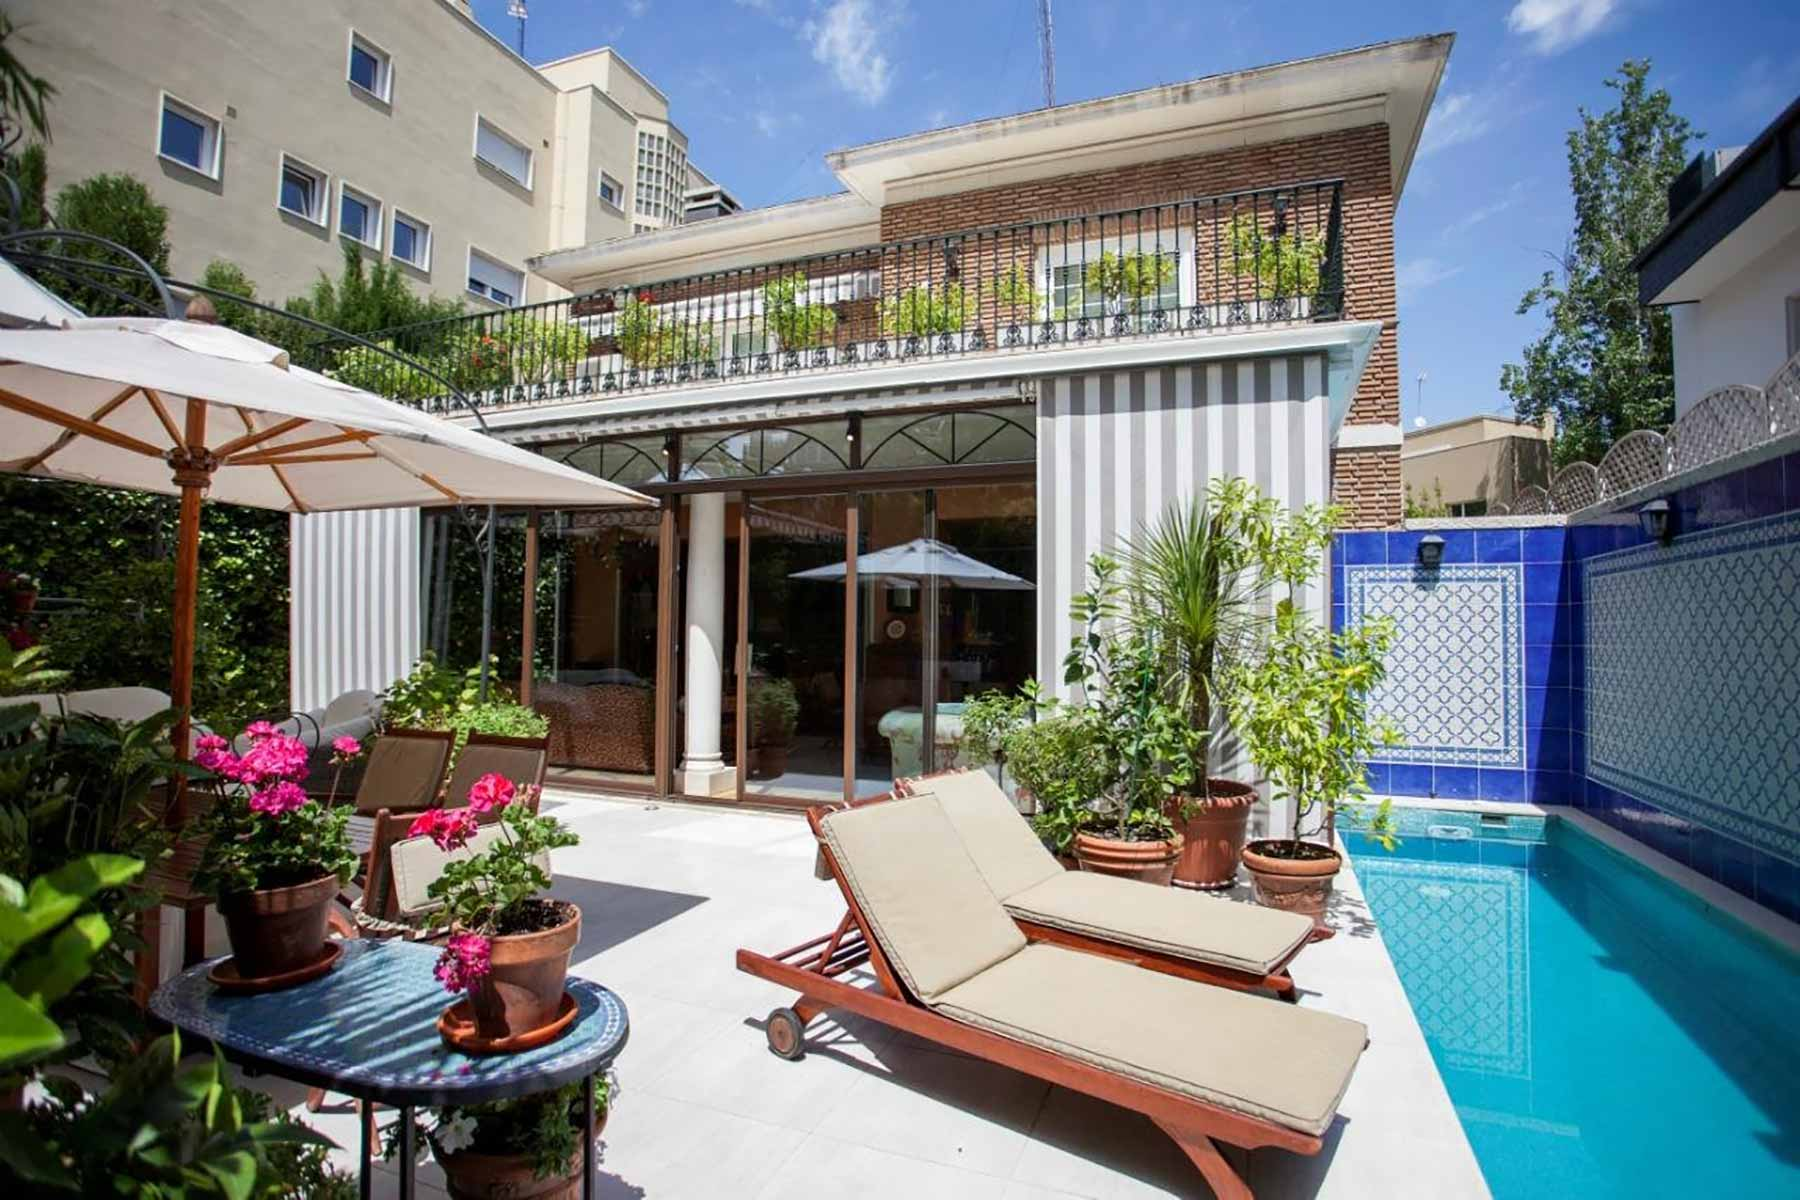 Madrid - Spain - House , 5 rooms, 5 bedrooms - Slideshow Picture 3